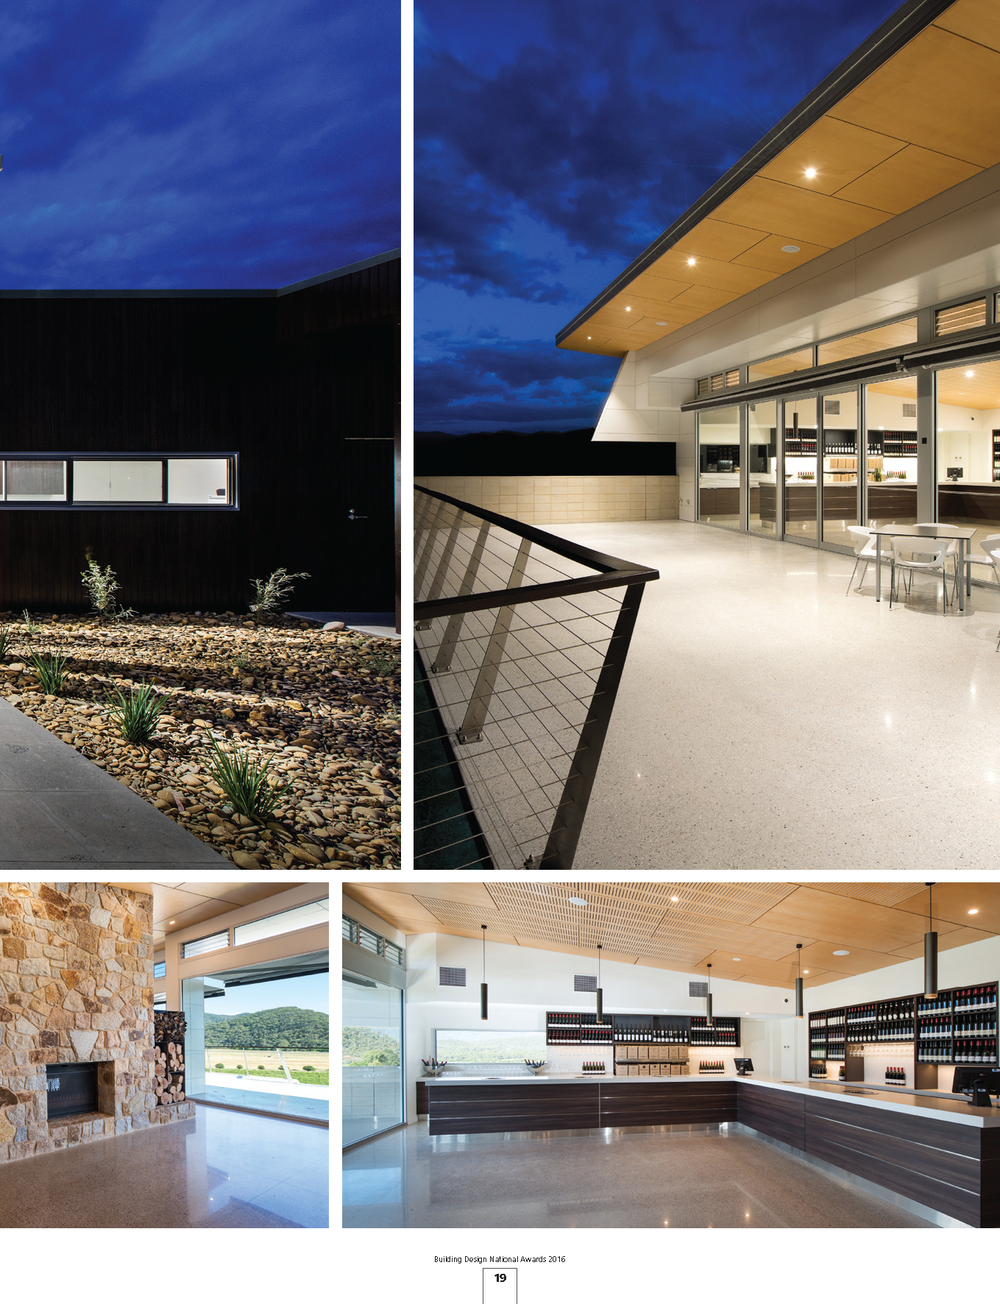 161004_Building Design Magazine (Chrismont Wines)_Page_5.png